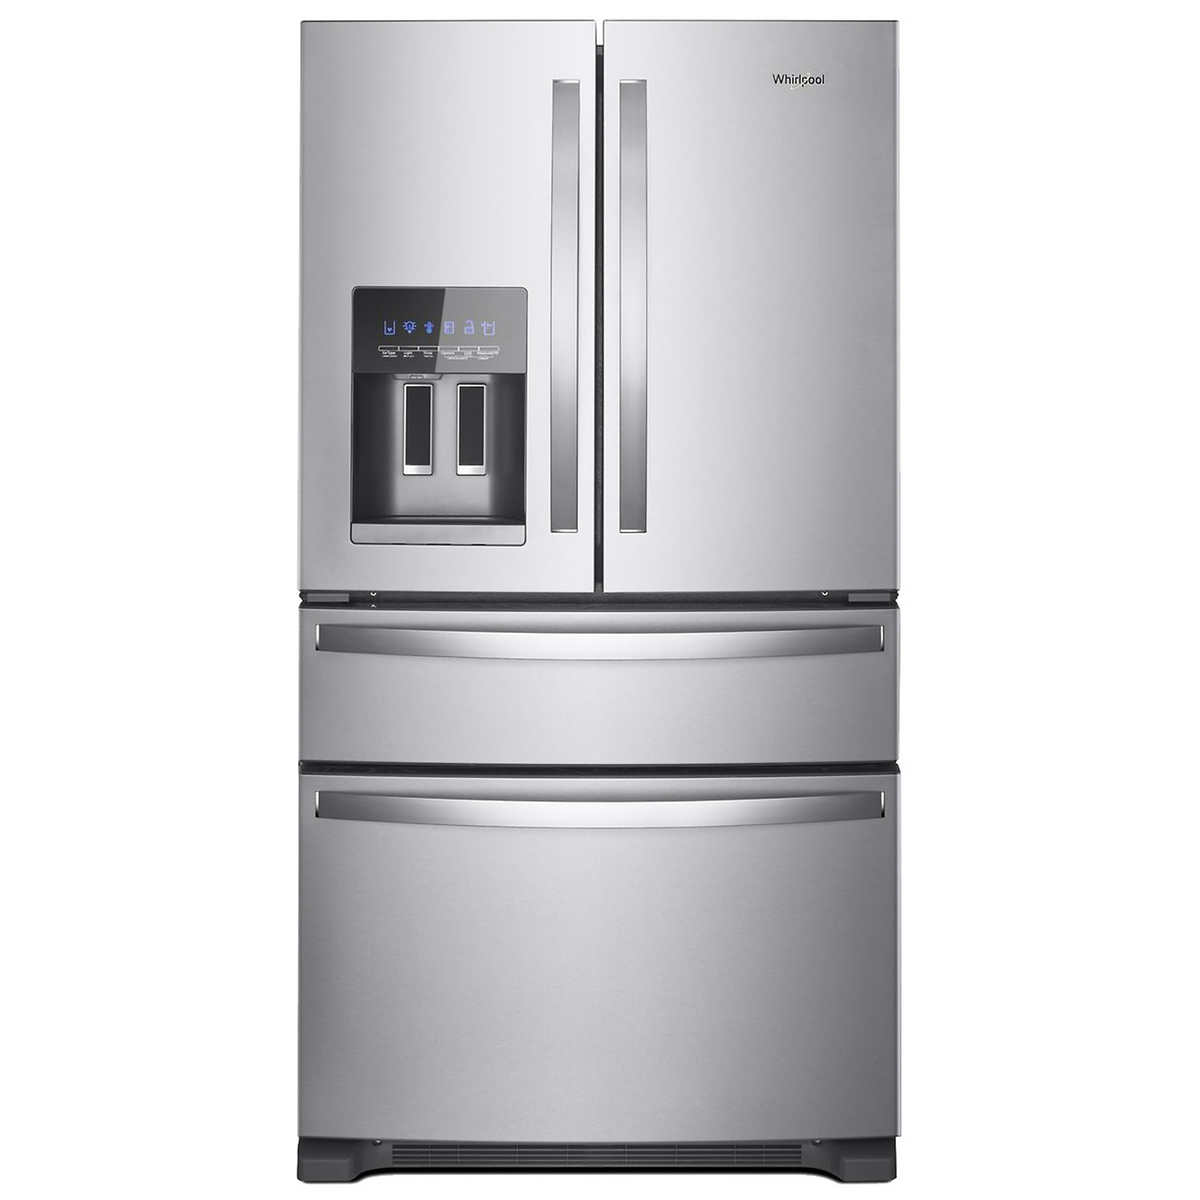 Whirlpool 25cuft 36 inch wide french door refrigerator with 1 1 rubansaba